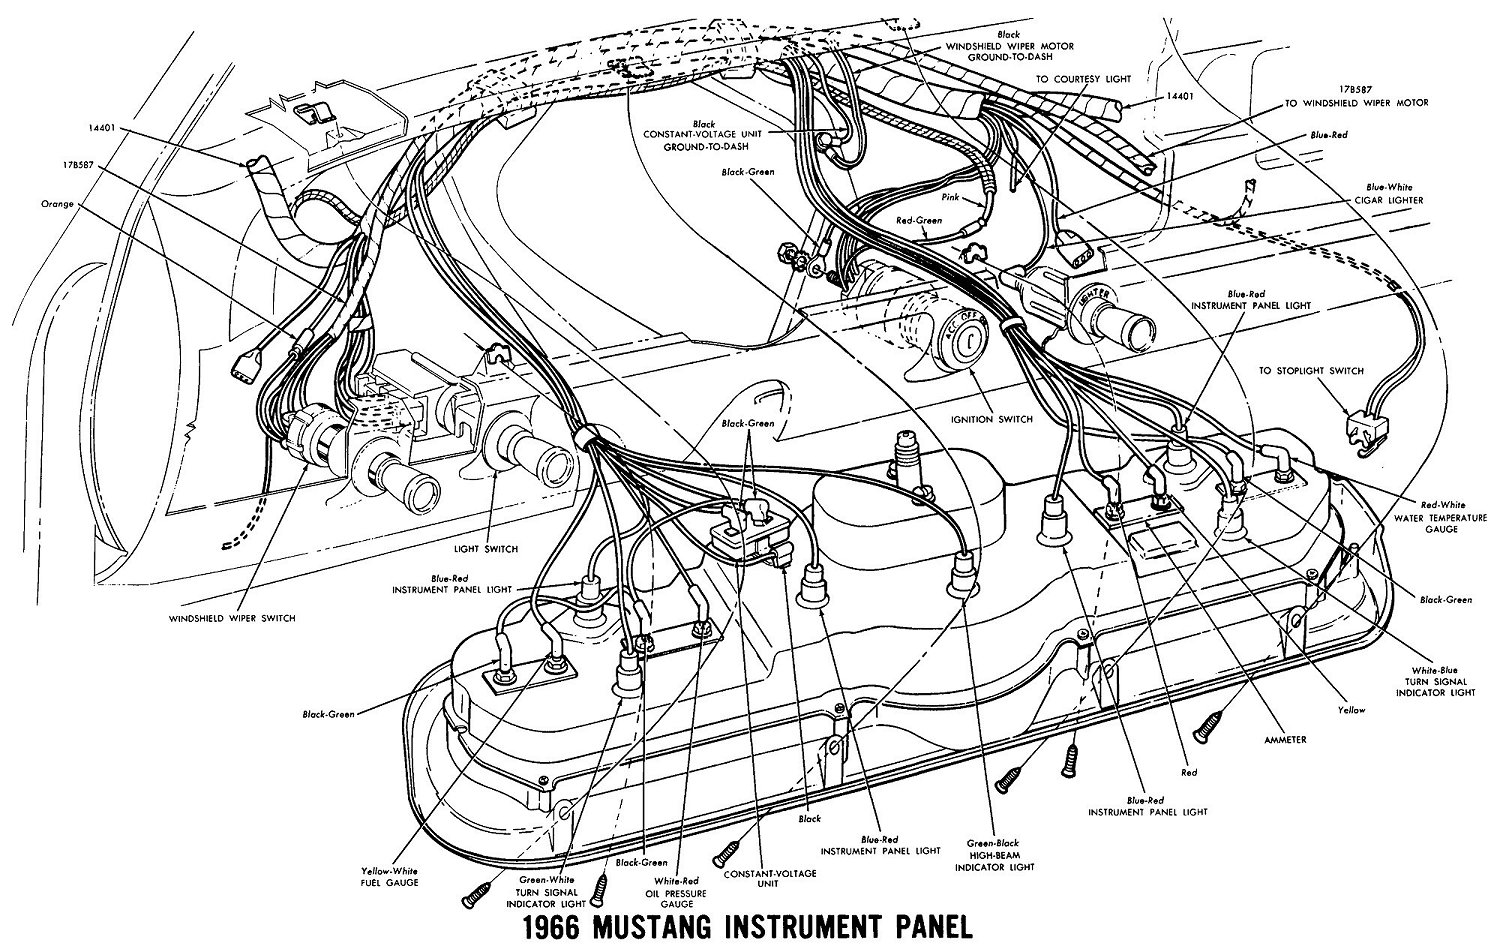 66InstrumentWiring lelu's 66 mustang 1966 mustang wiring diagrams 66 mustang wiring diagram at nearapp.co